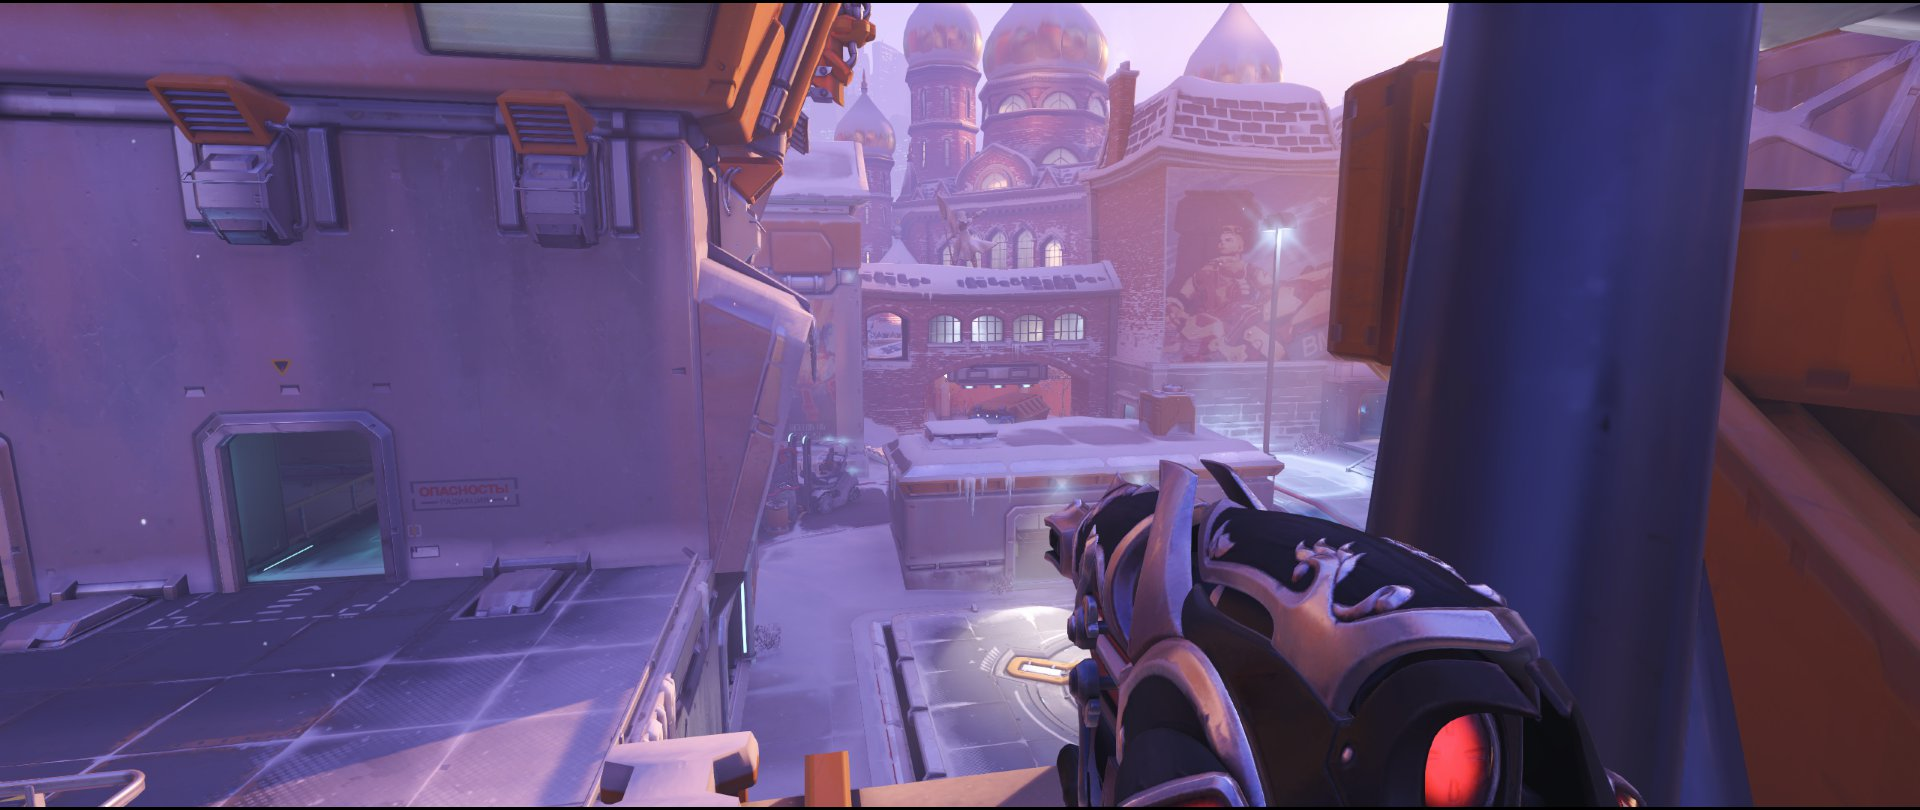 Robot first cable view defense sniping spot Widowmaker Volskaya Industries Overwatch.jpg